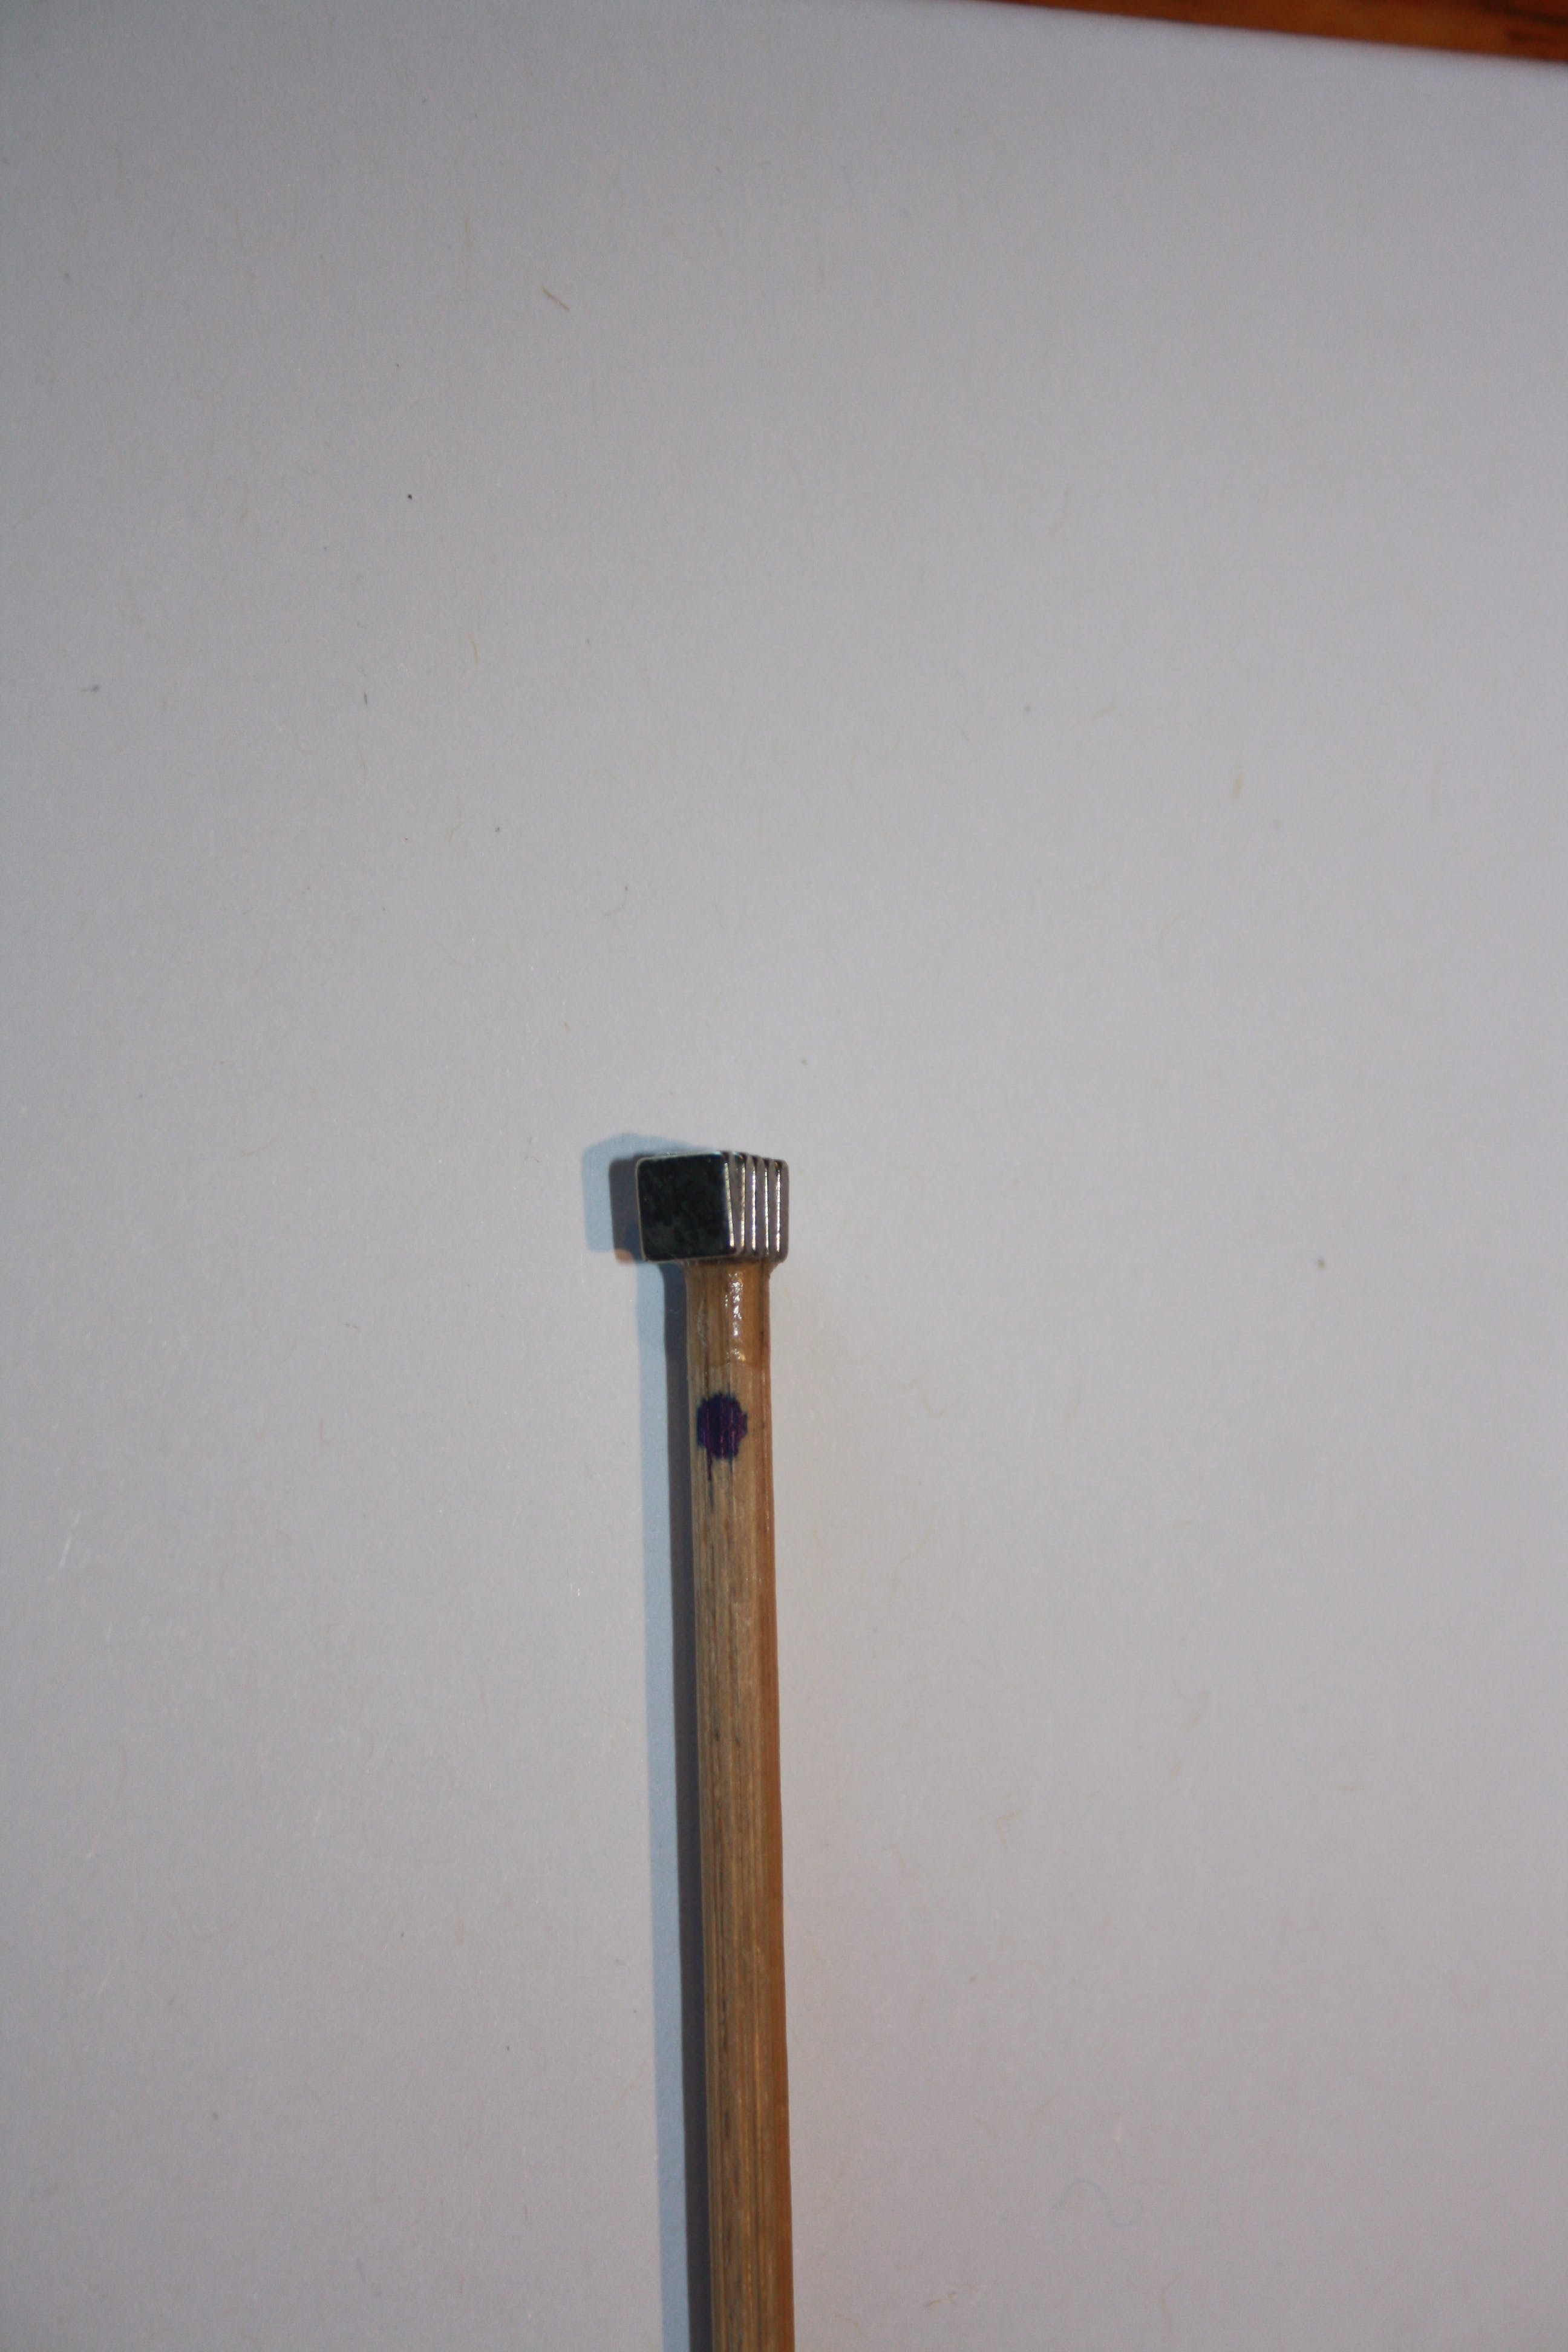 Construction of the magnetic hydrometer